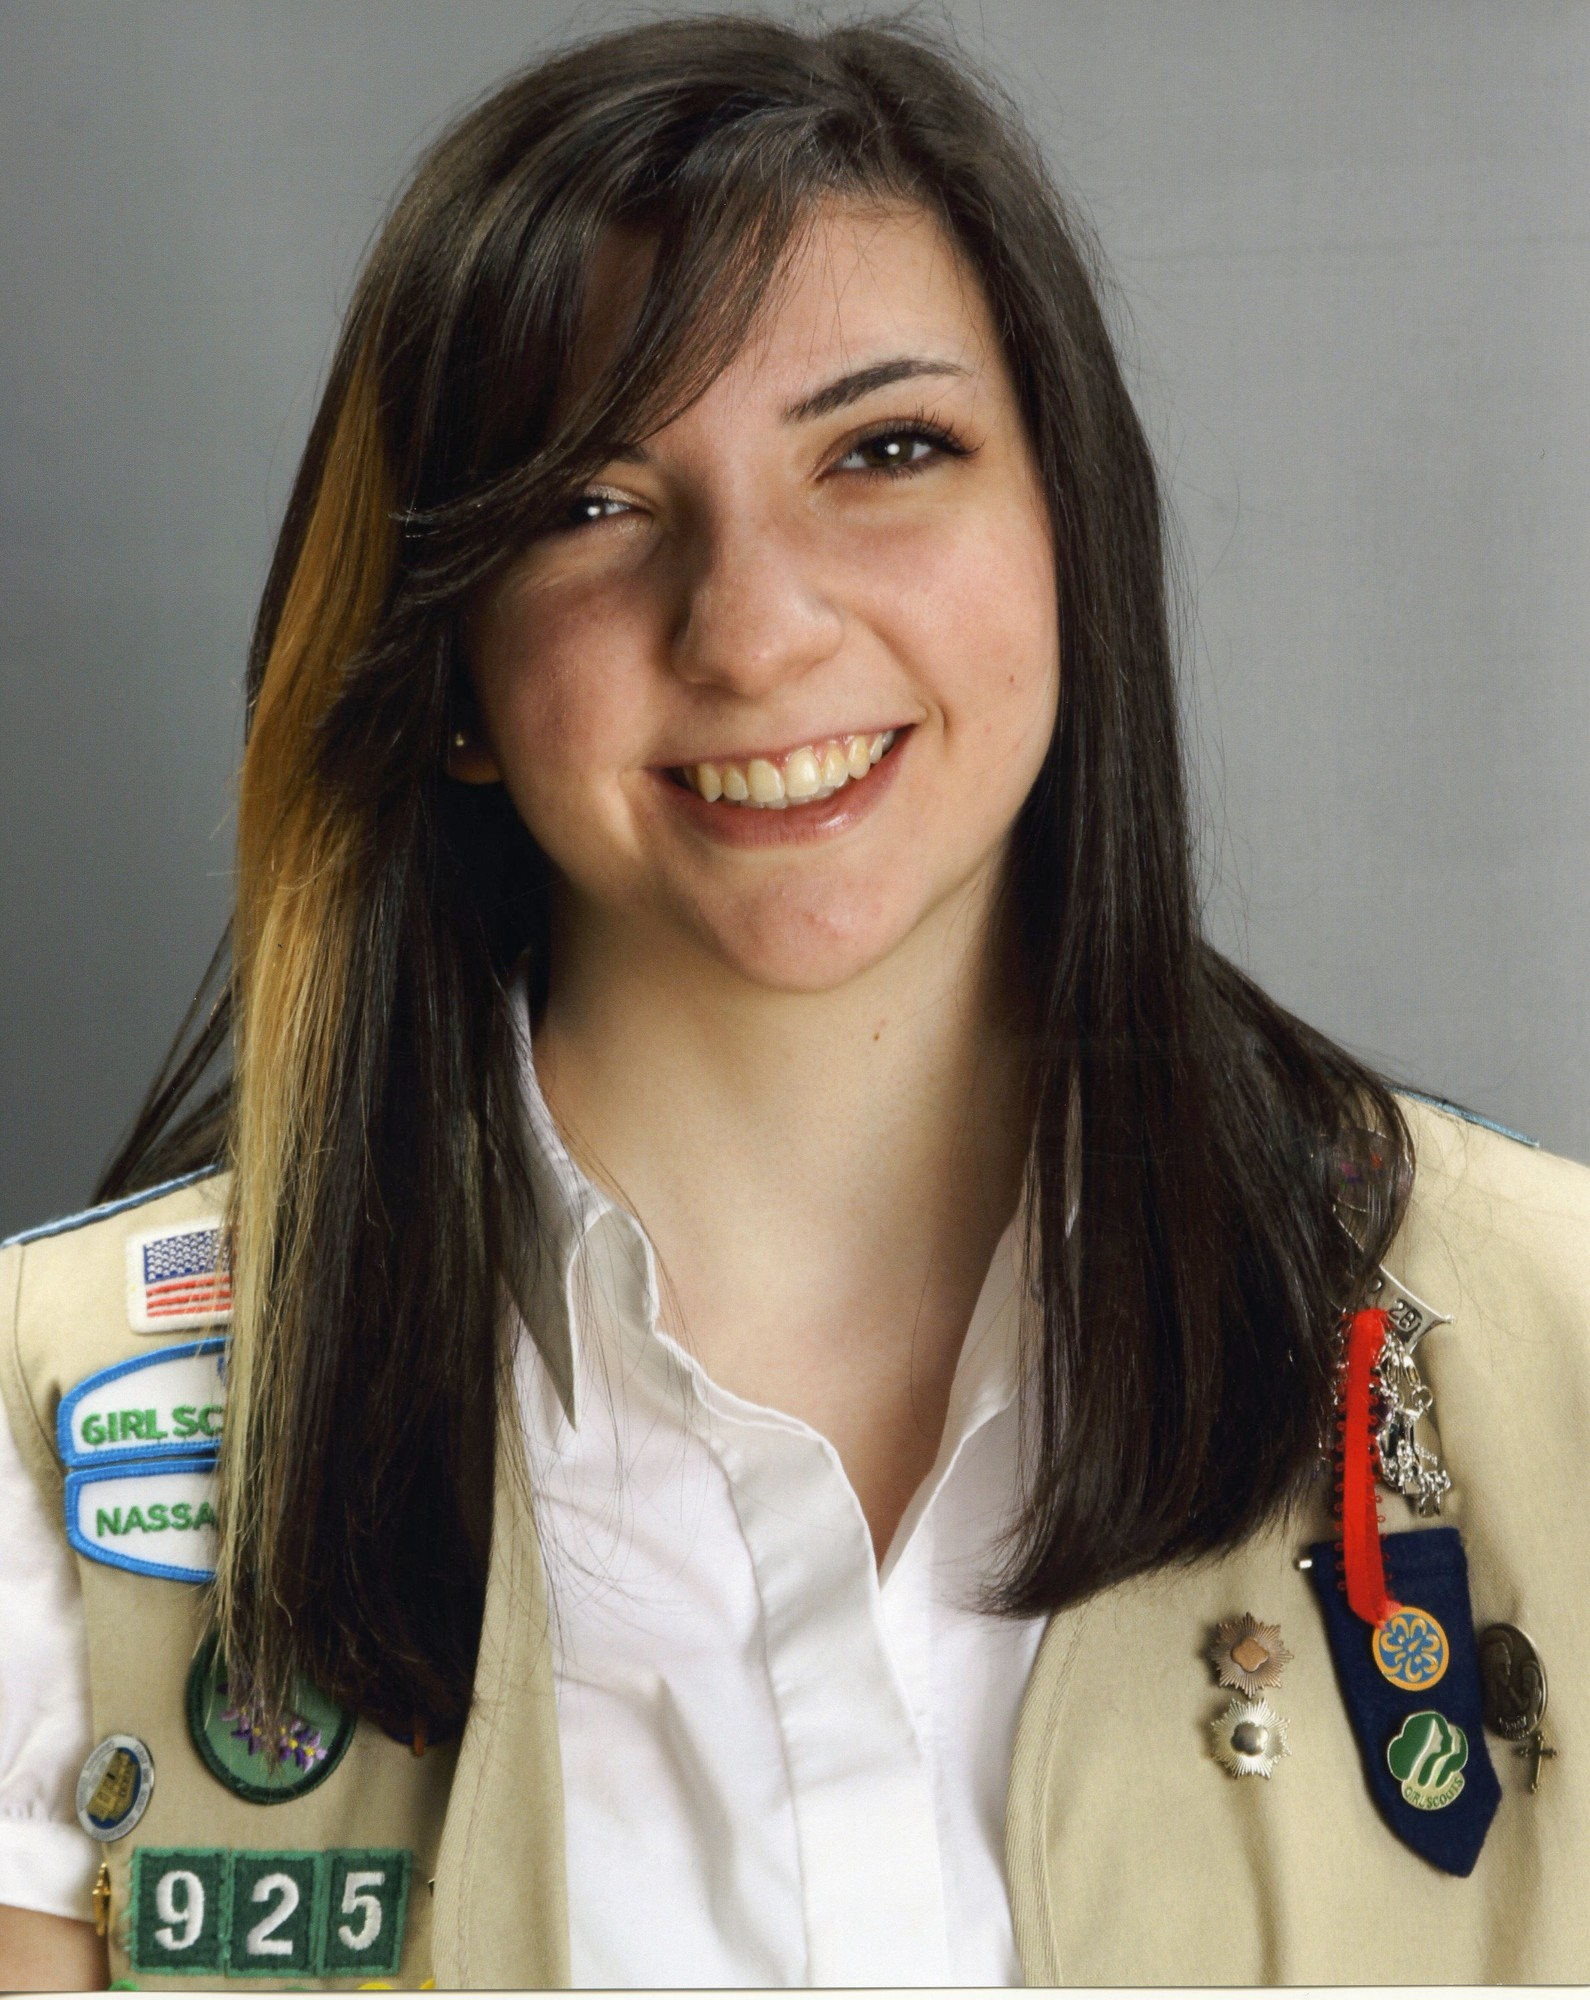 Deanna Parlagreco earned her Girl Scout Gold Award.